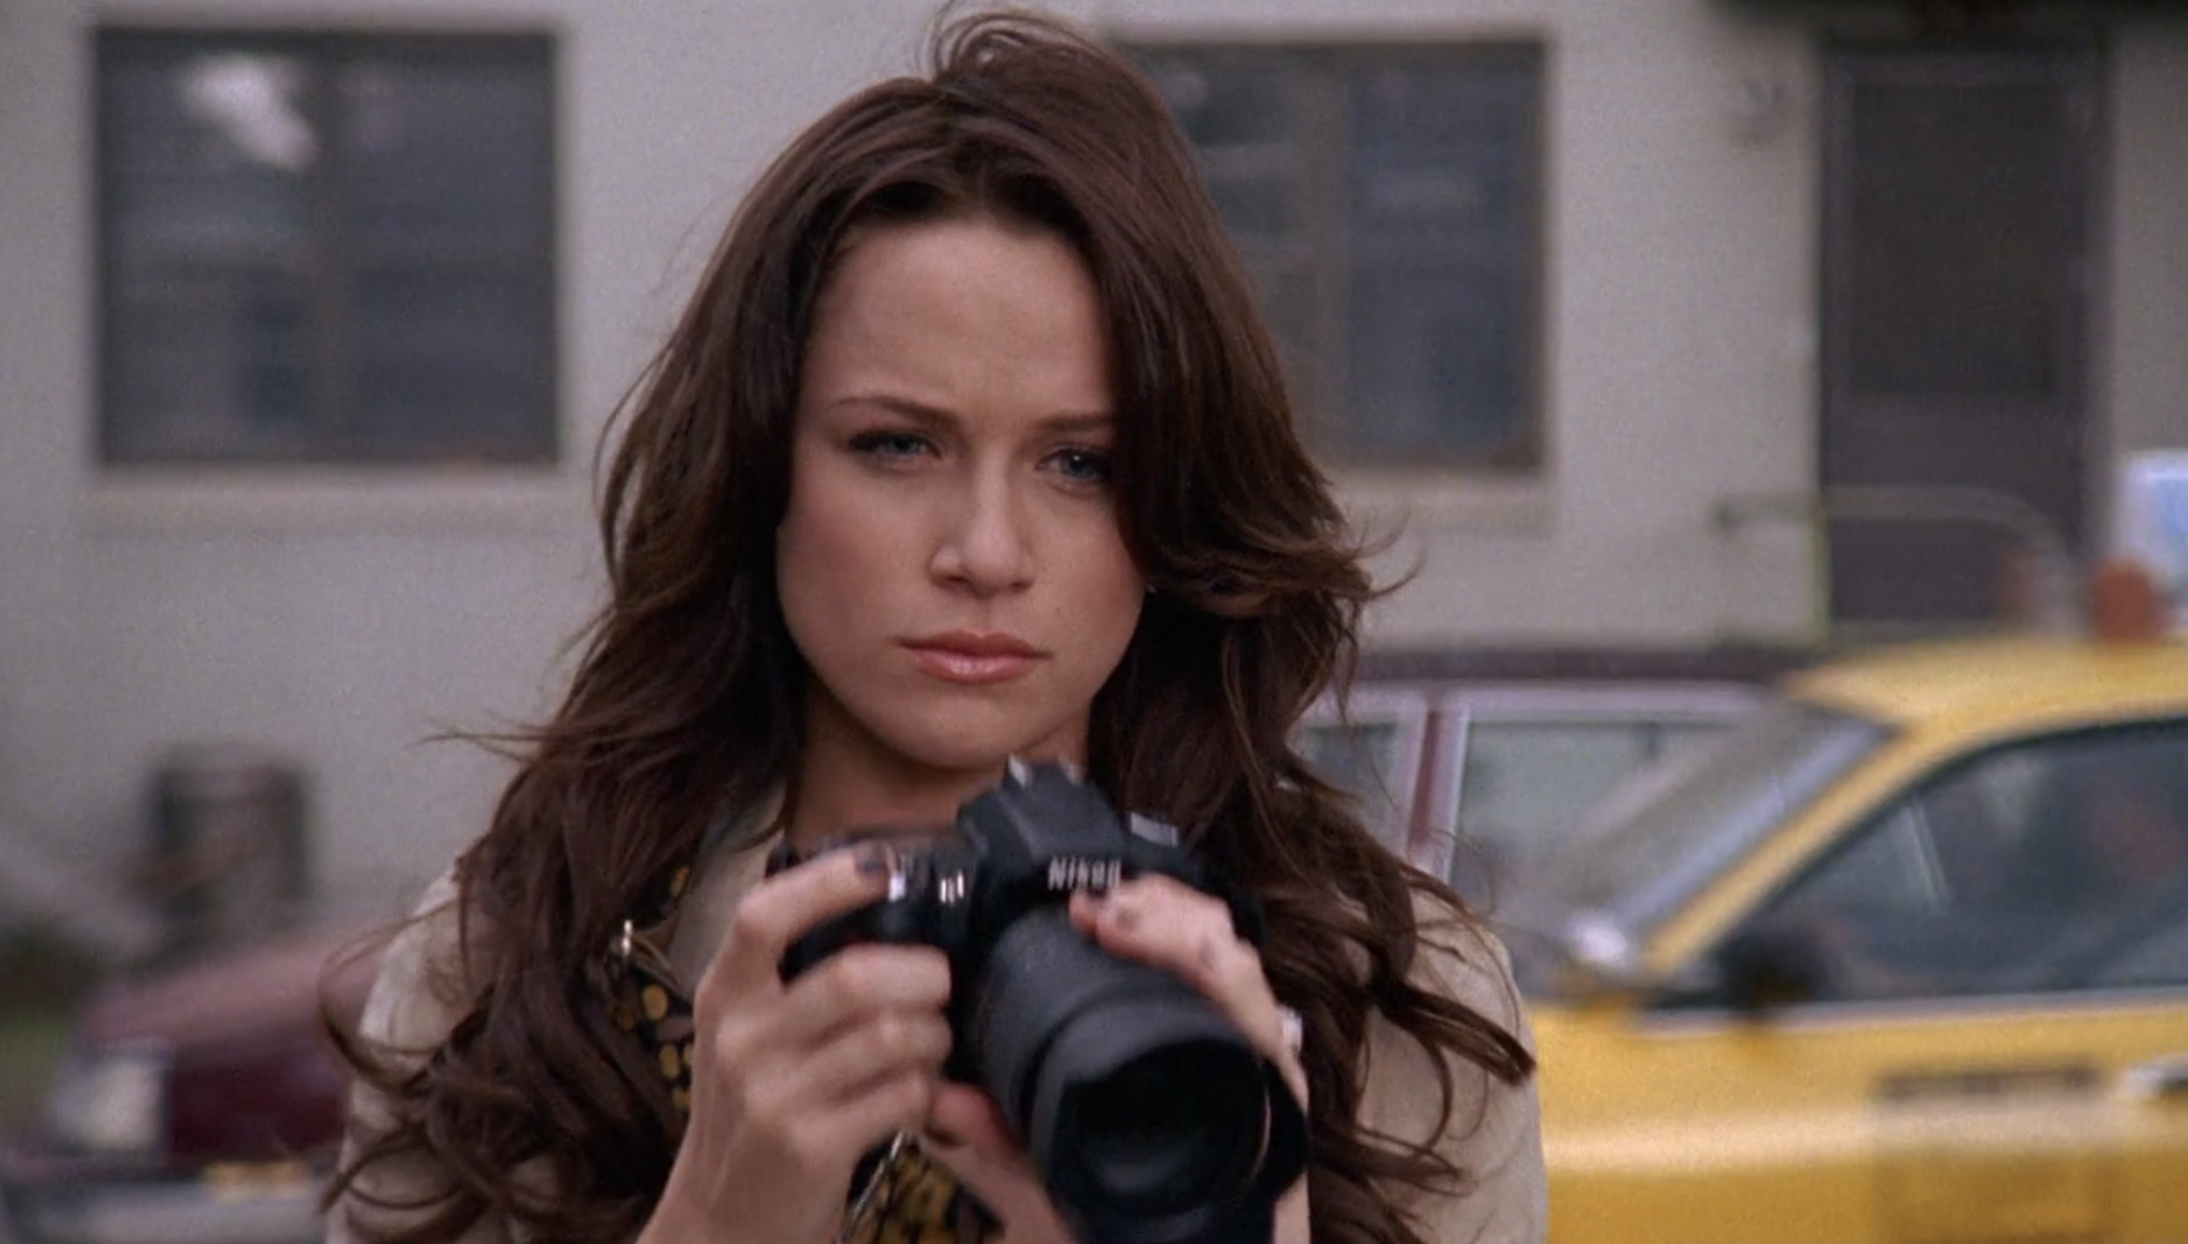 Quinn with a camera